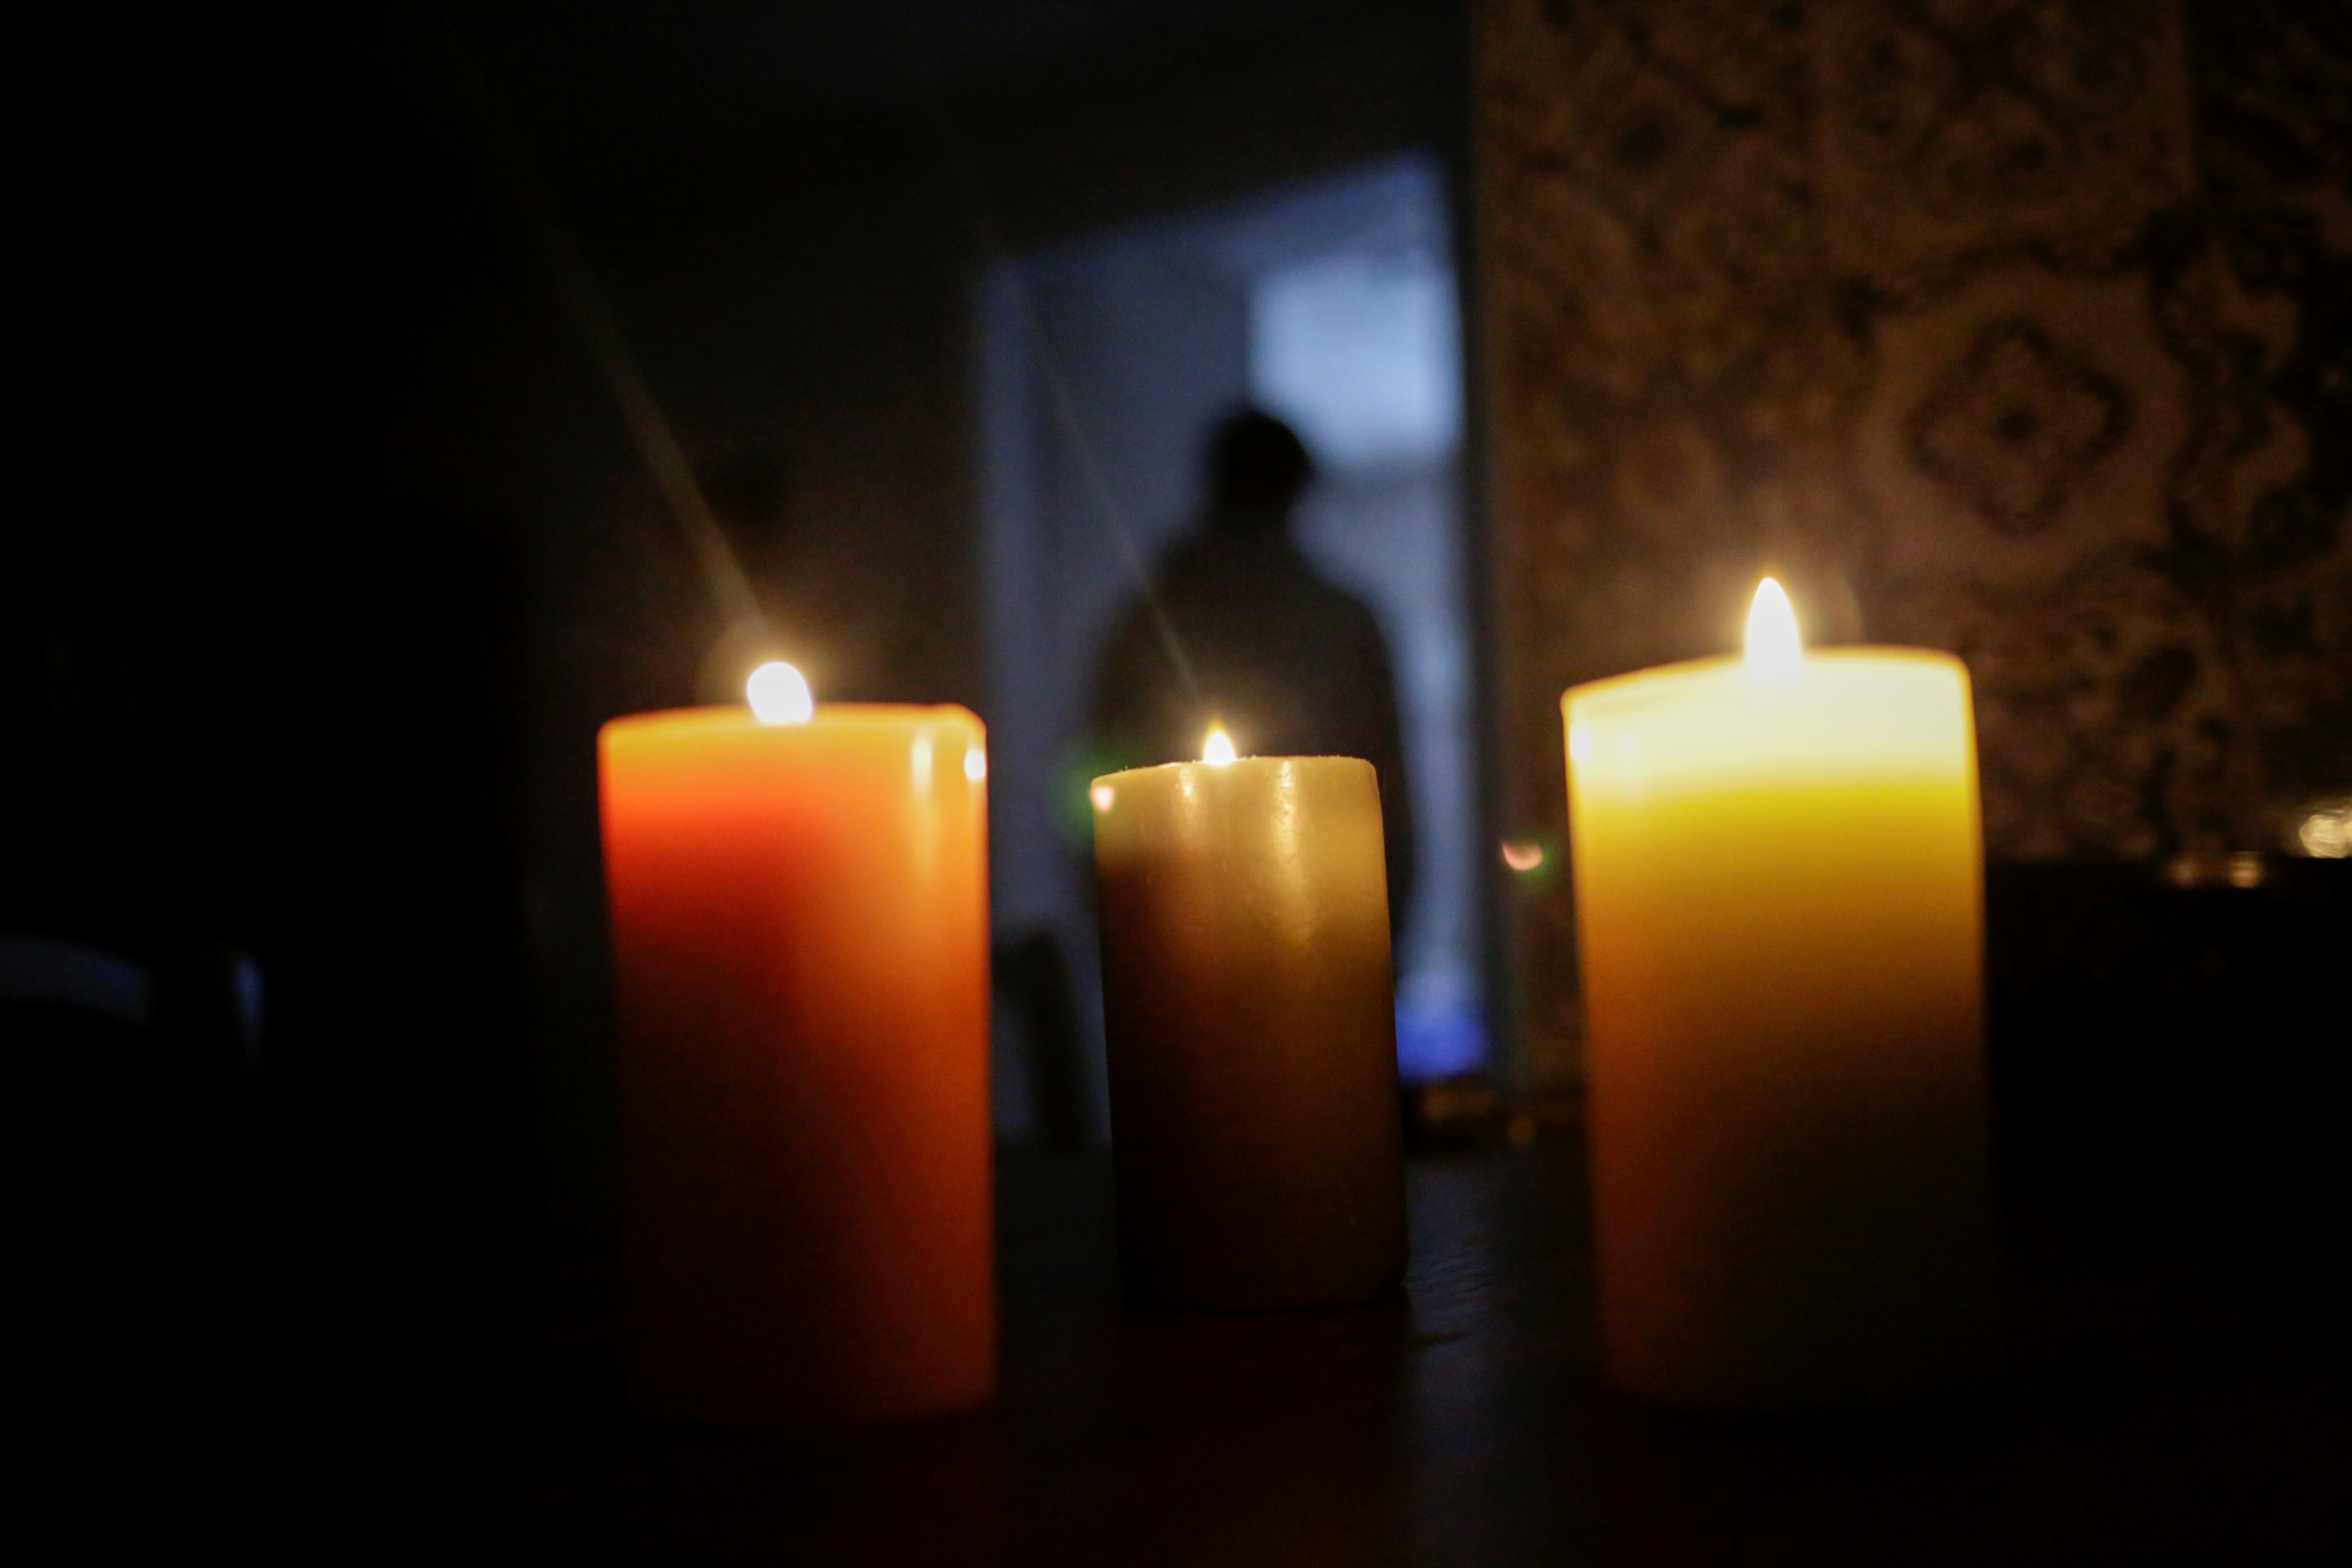 Candles are used inside a room during an outage in Mexico's electricity network, in Ciudad Juarez, Mexico February 15, 2021. REUTERS/Jose Luis Gonzalez